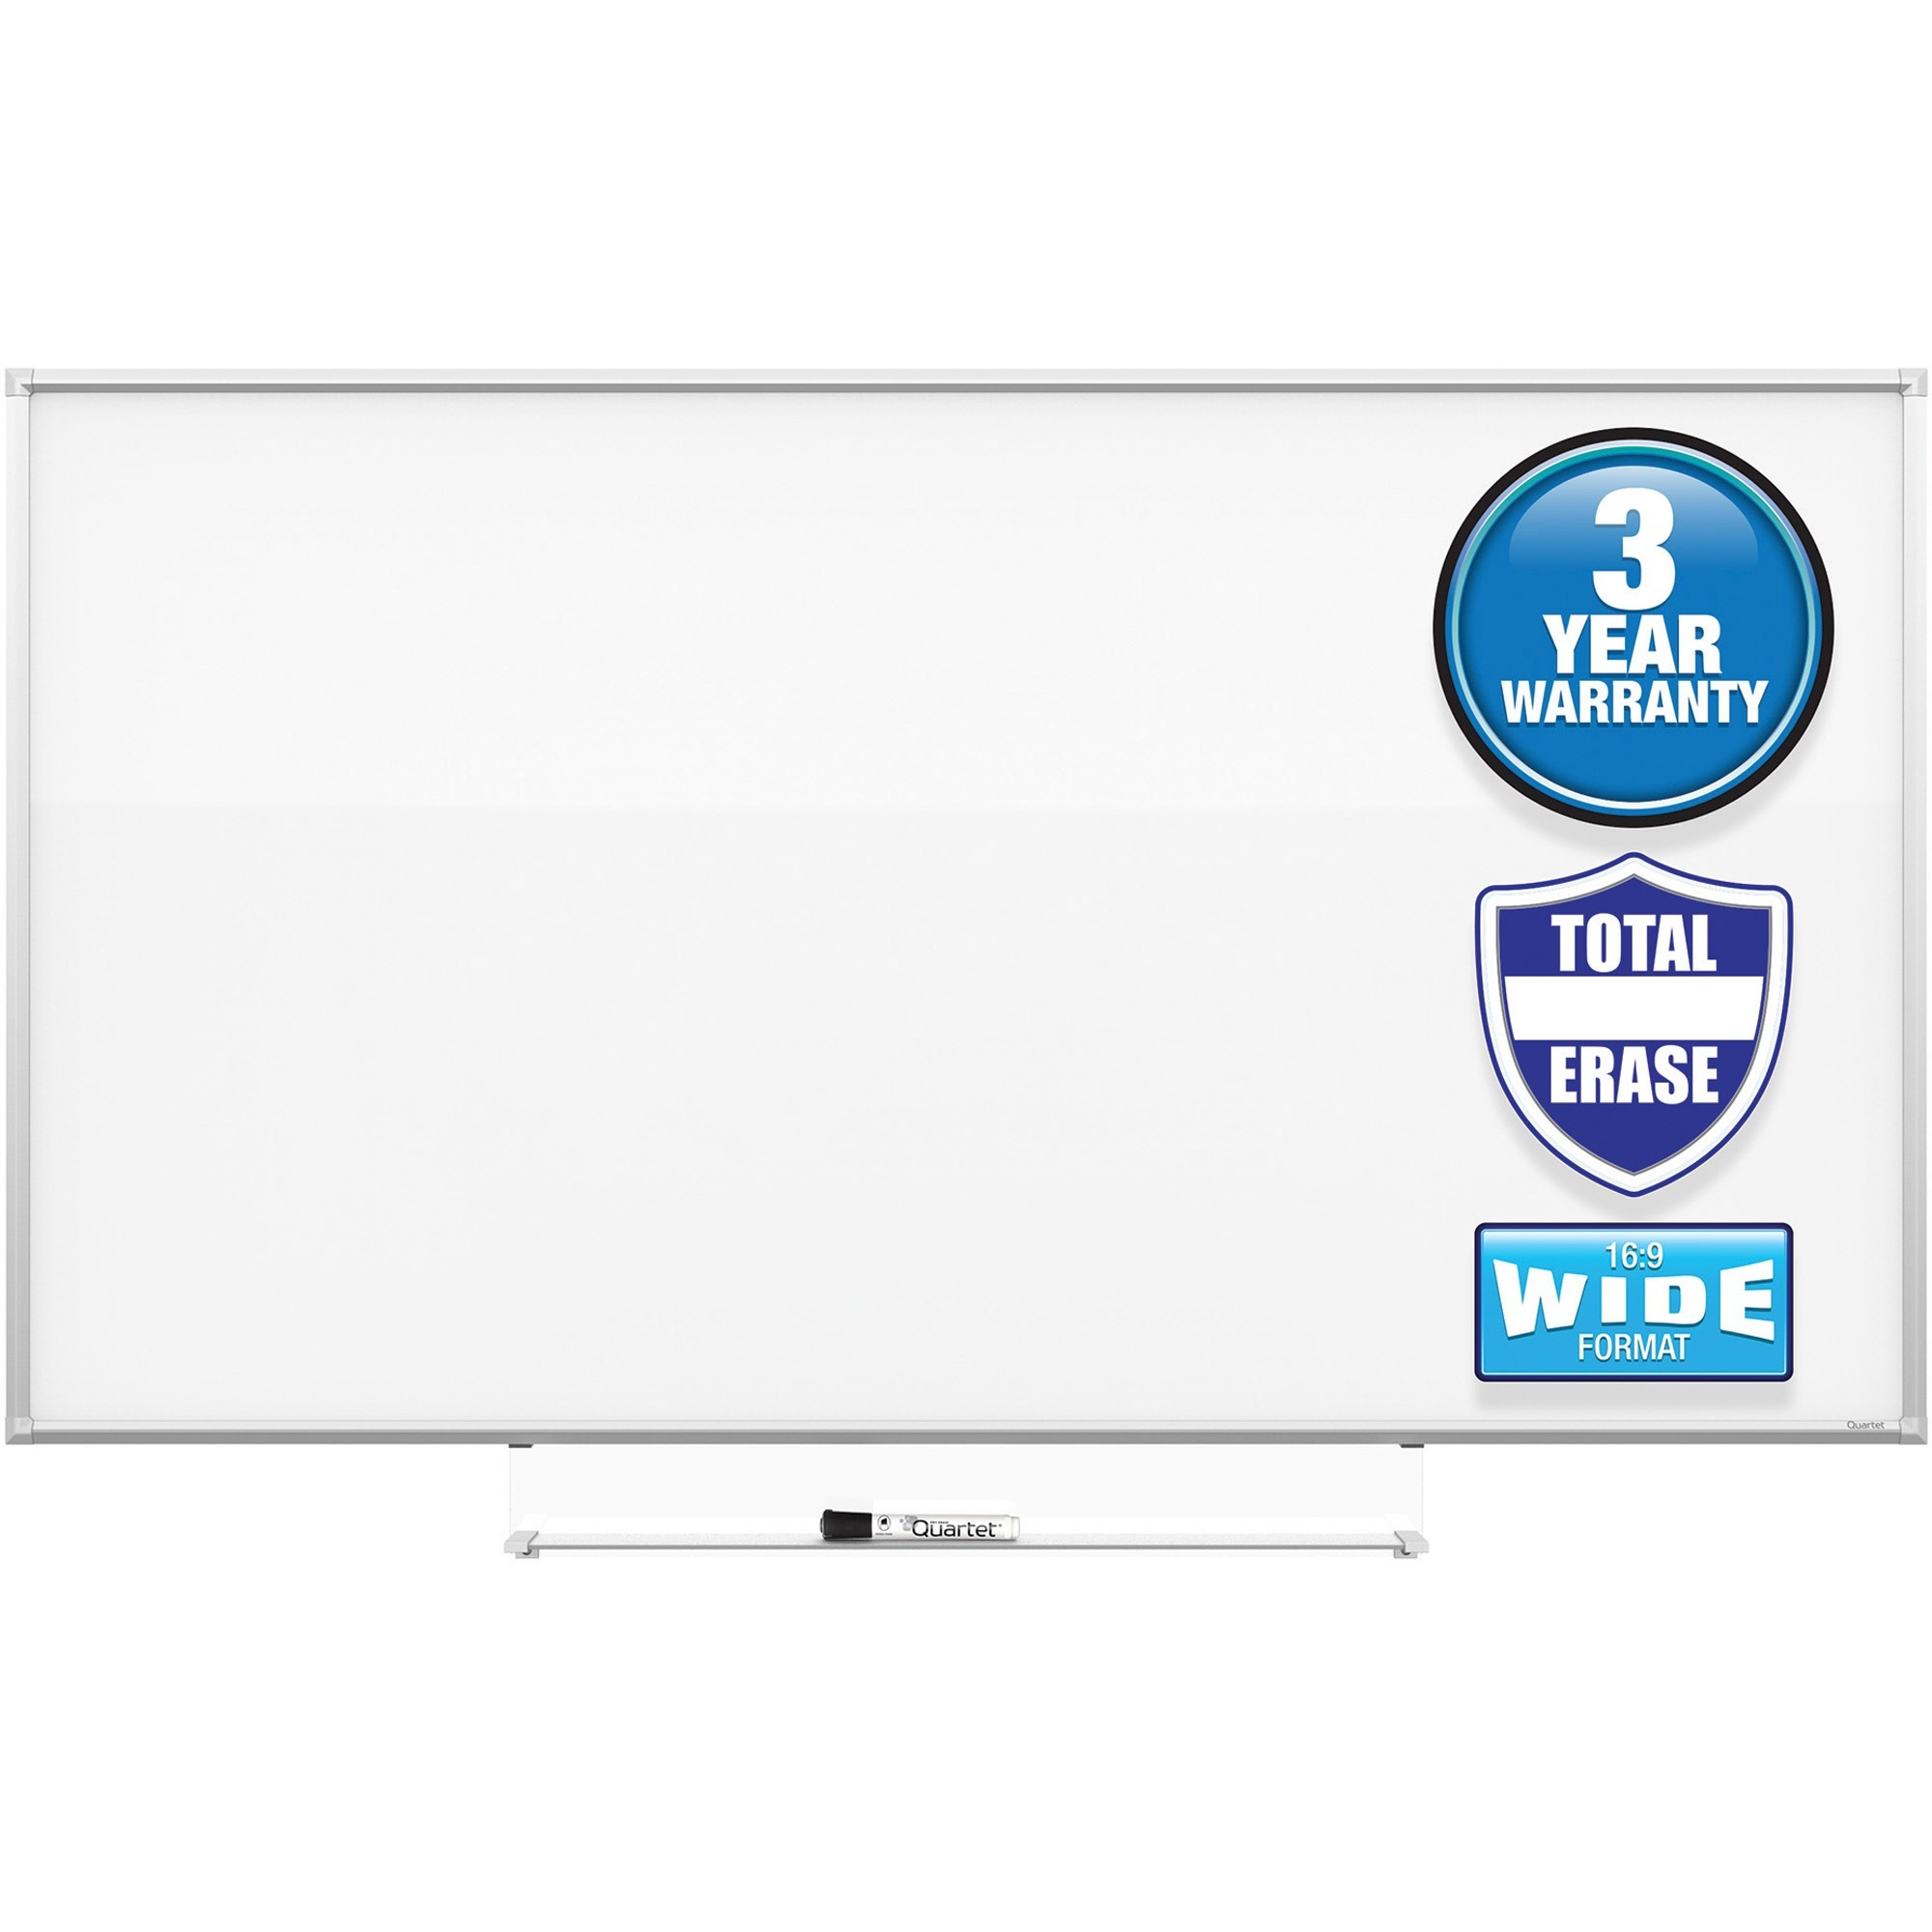 Acco Brands Corporation Quartet Silhouette 50X28 Total Erase Board - 28 (2.3 Ft) Width X 50 (4.2 Ft) Height - White Melamine Surface - Rectangle - Assembly Required - 1 Each